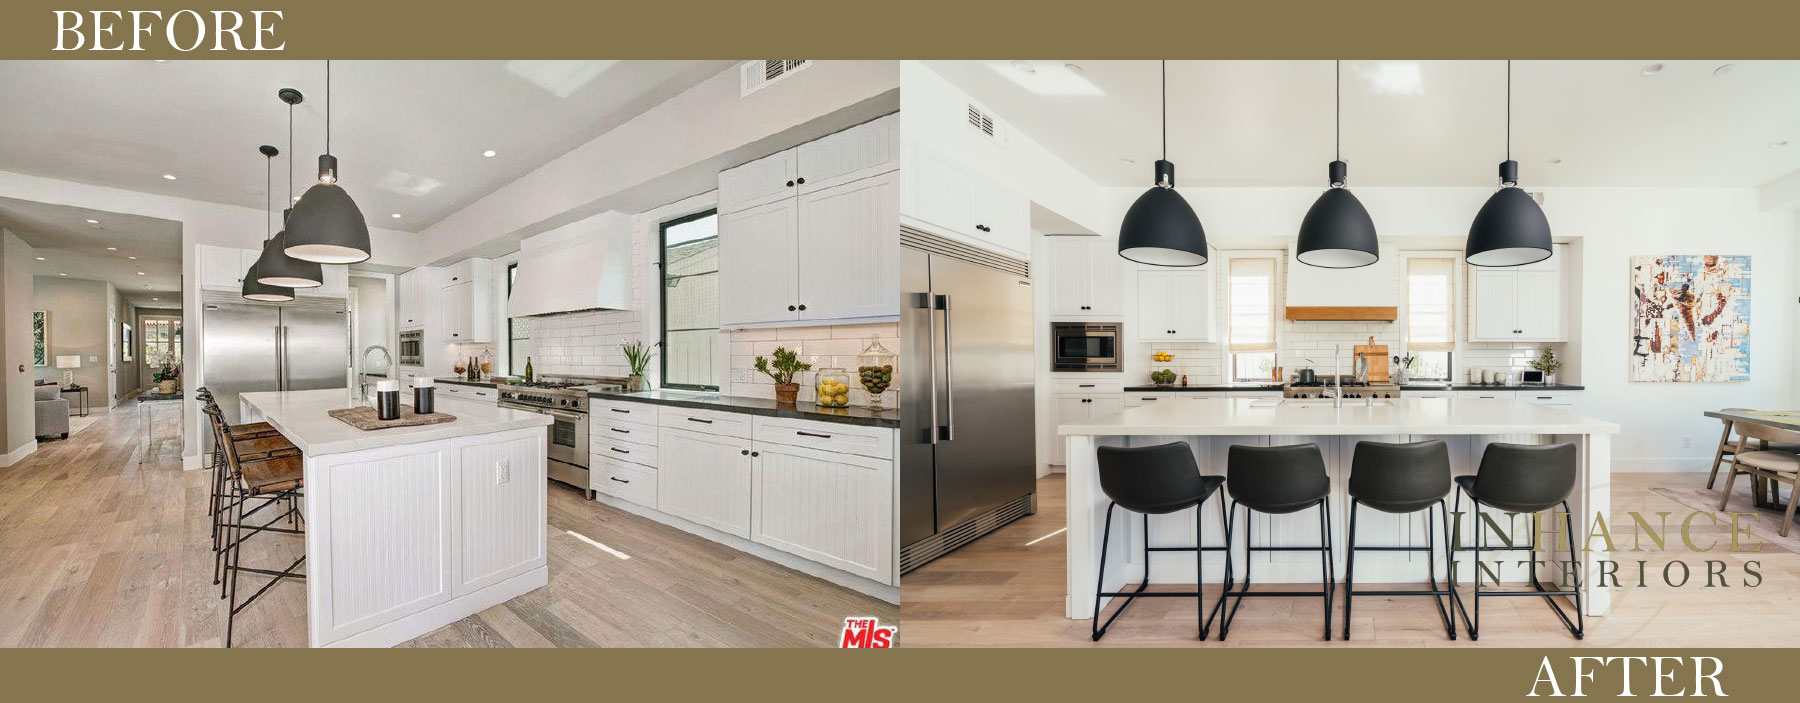 Chenault_BeforeAfter_Kitchen.jpg